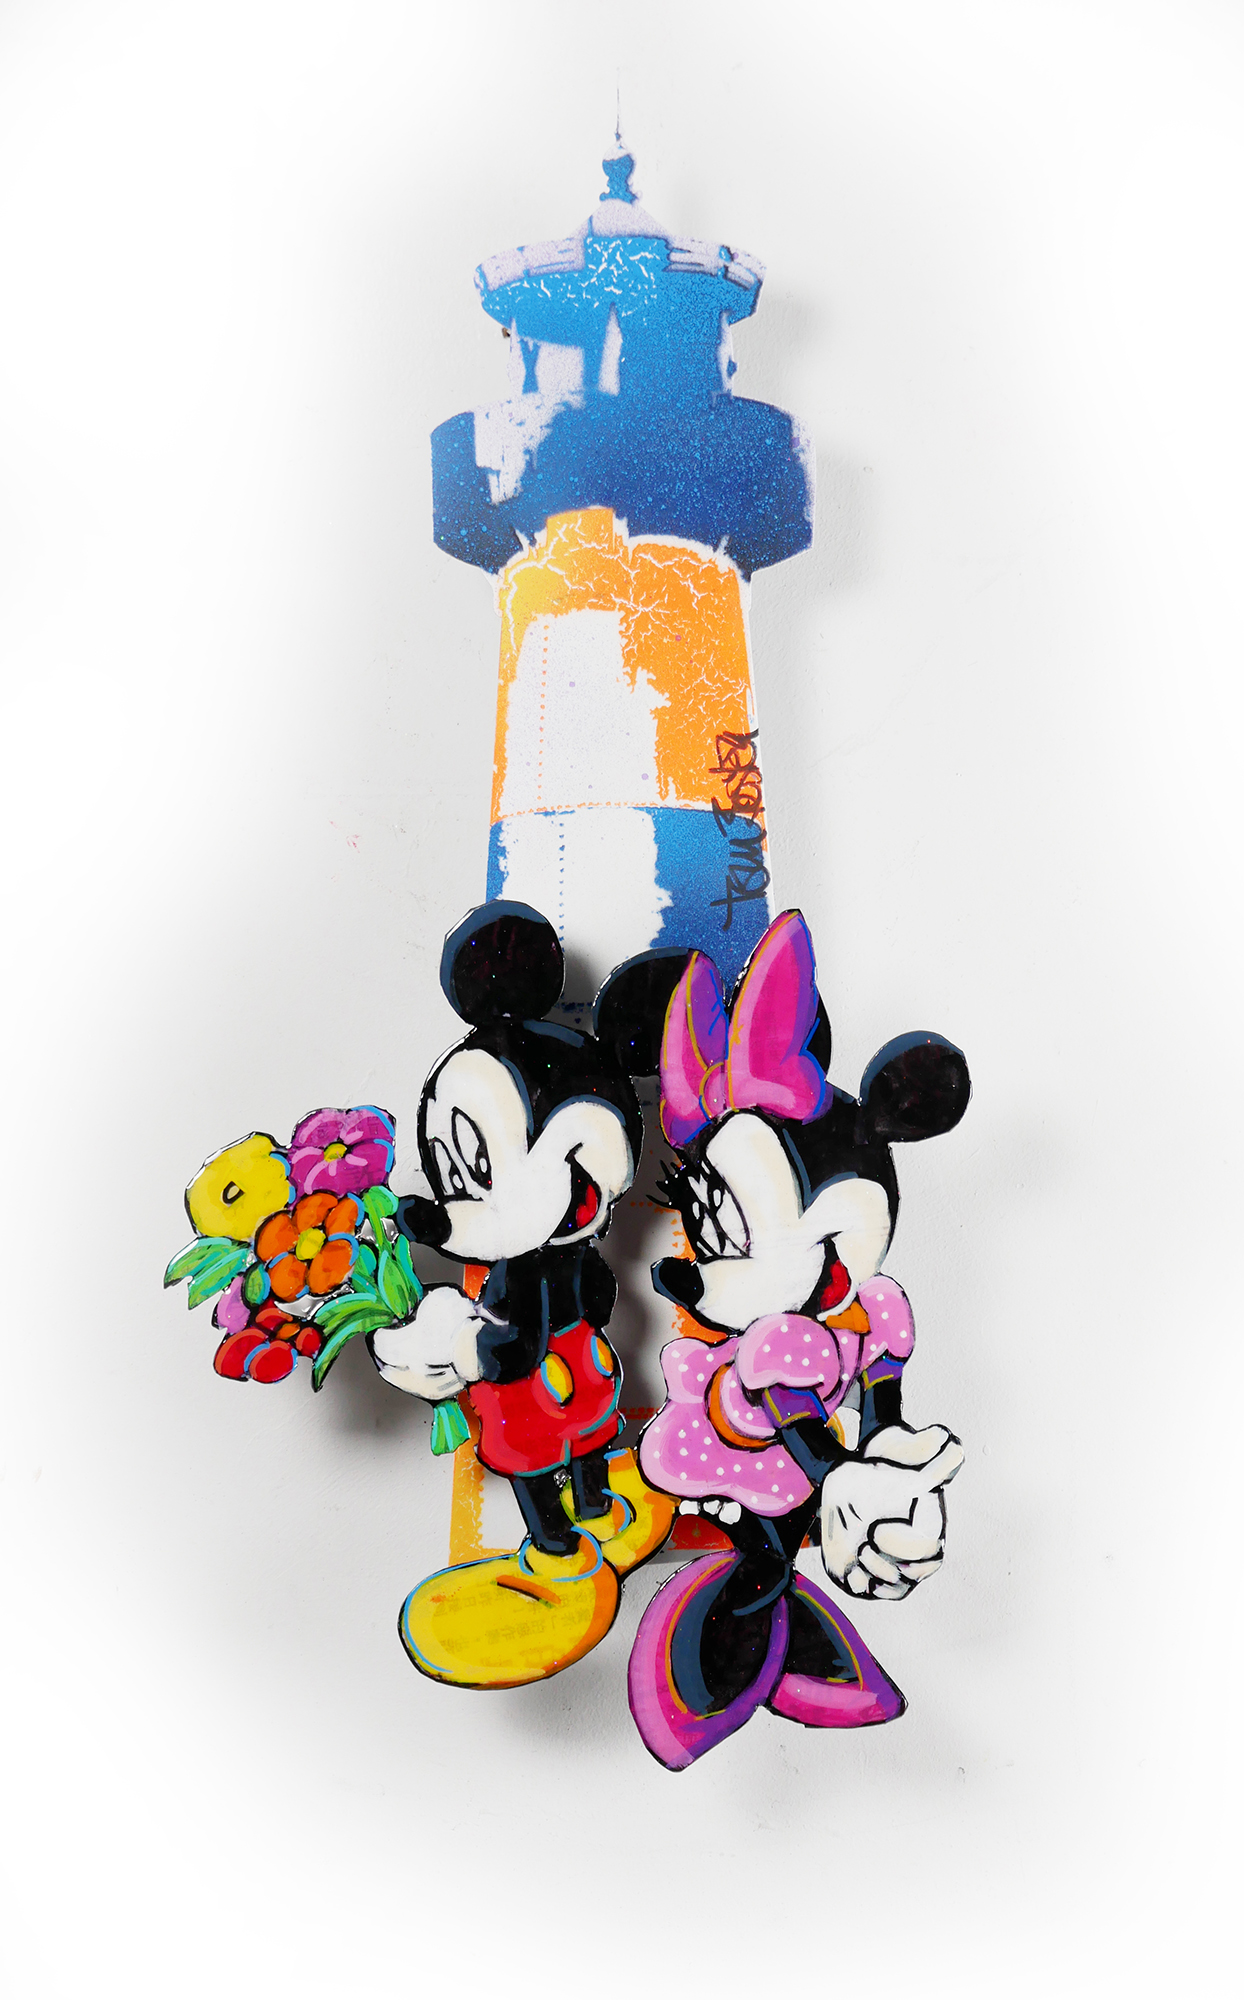 Tom Boston - My Light (Mickey & Minnie) , 8022-006-064